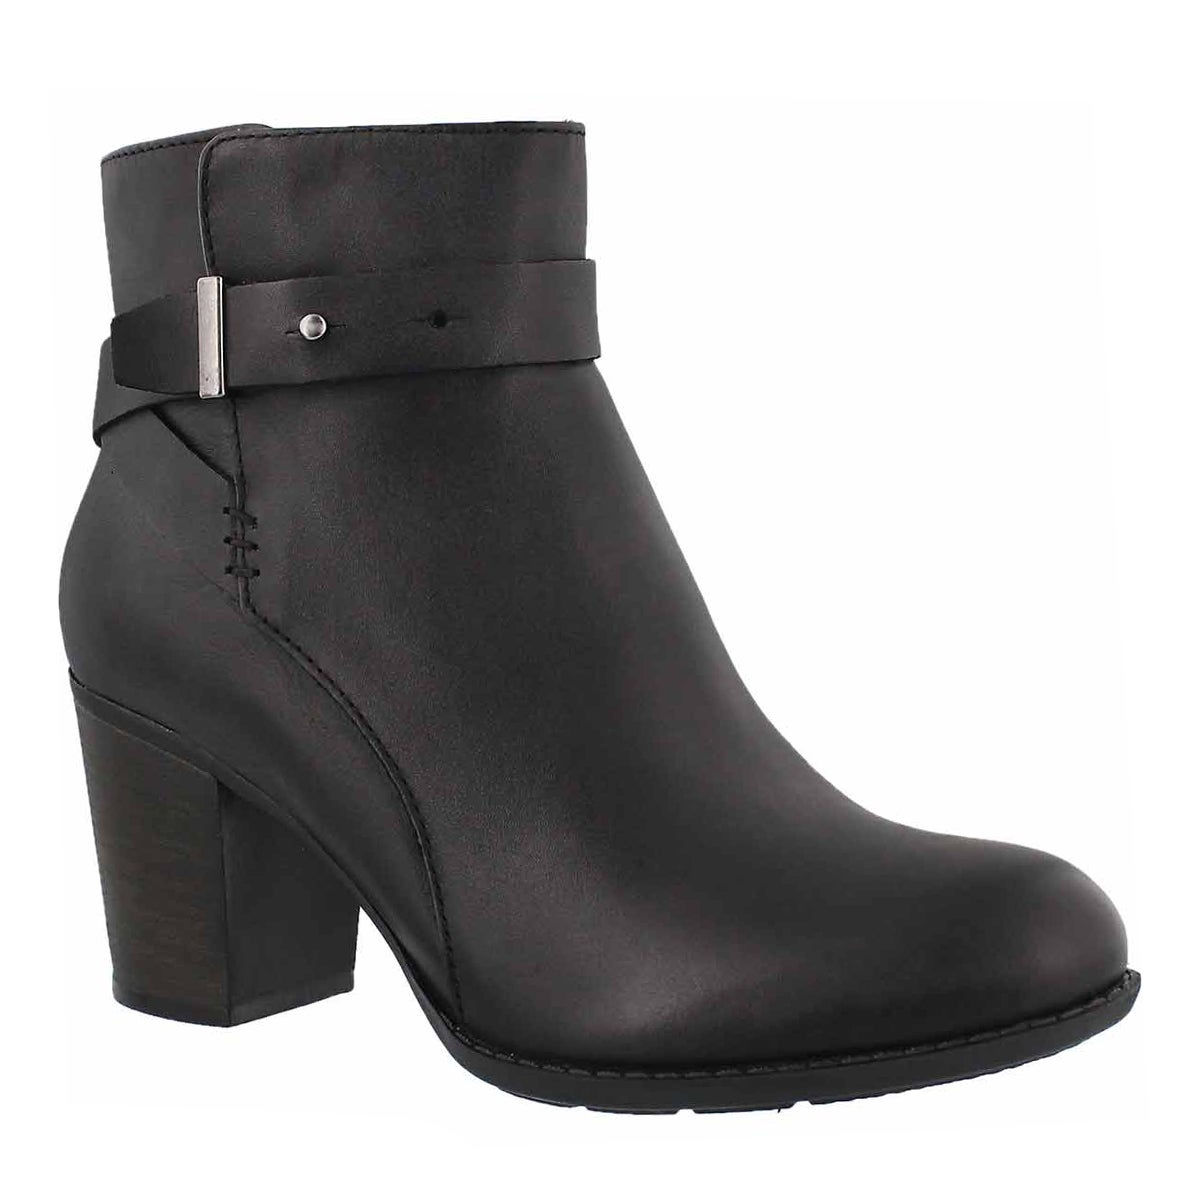 Women's ENFIELD SARI black dress booties